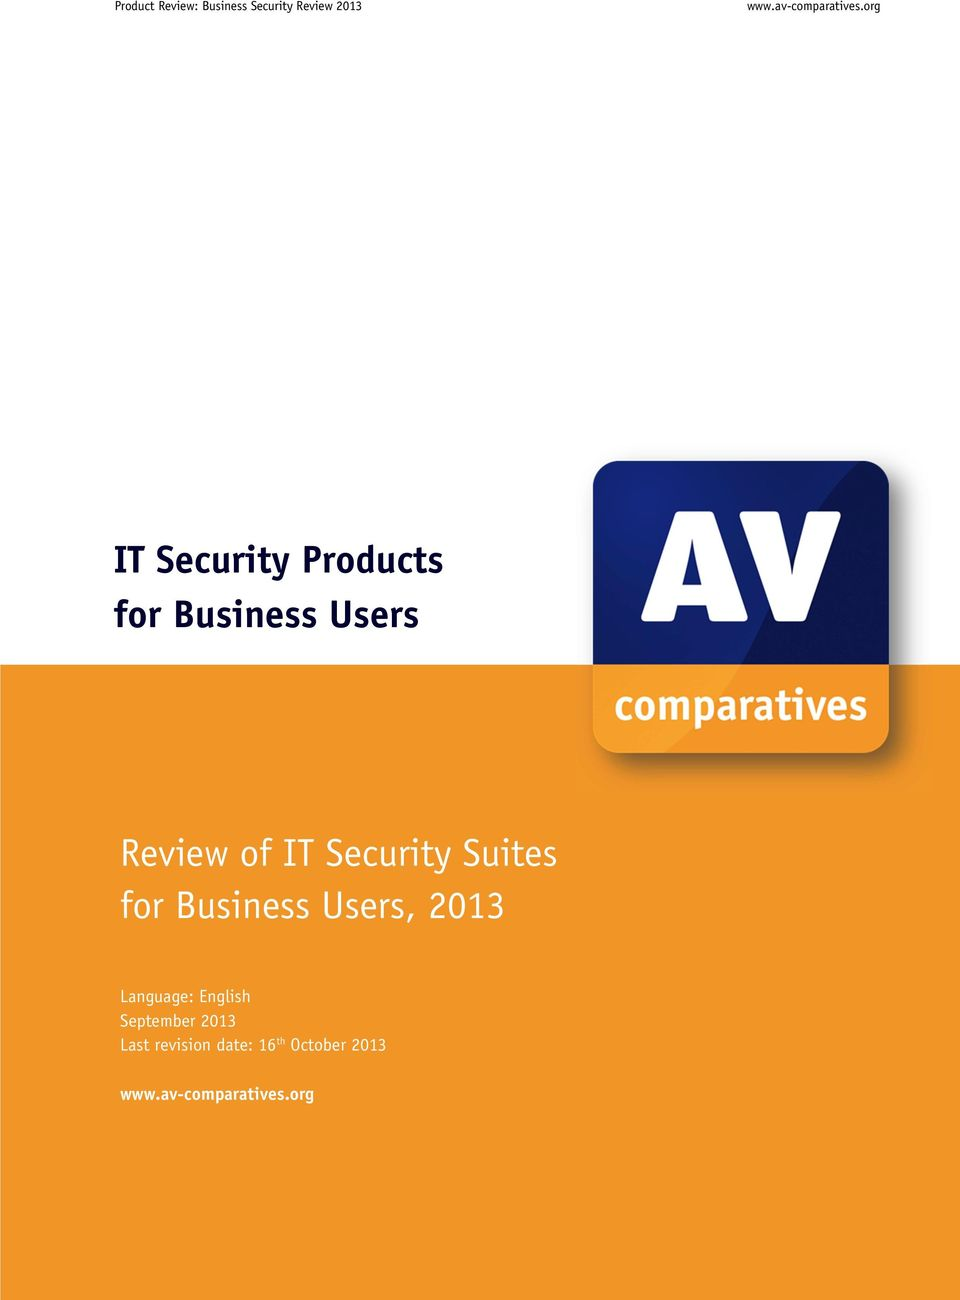 Security Suites for Business Users, 2013 Language: